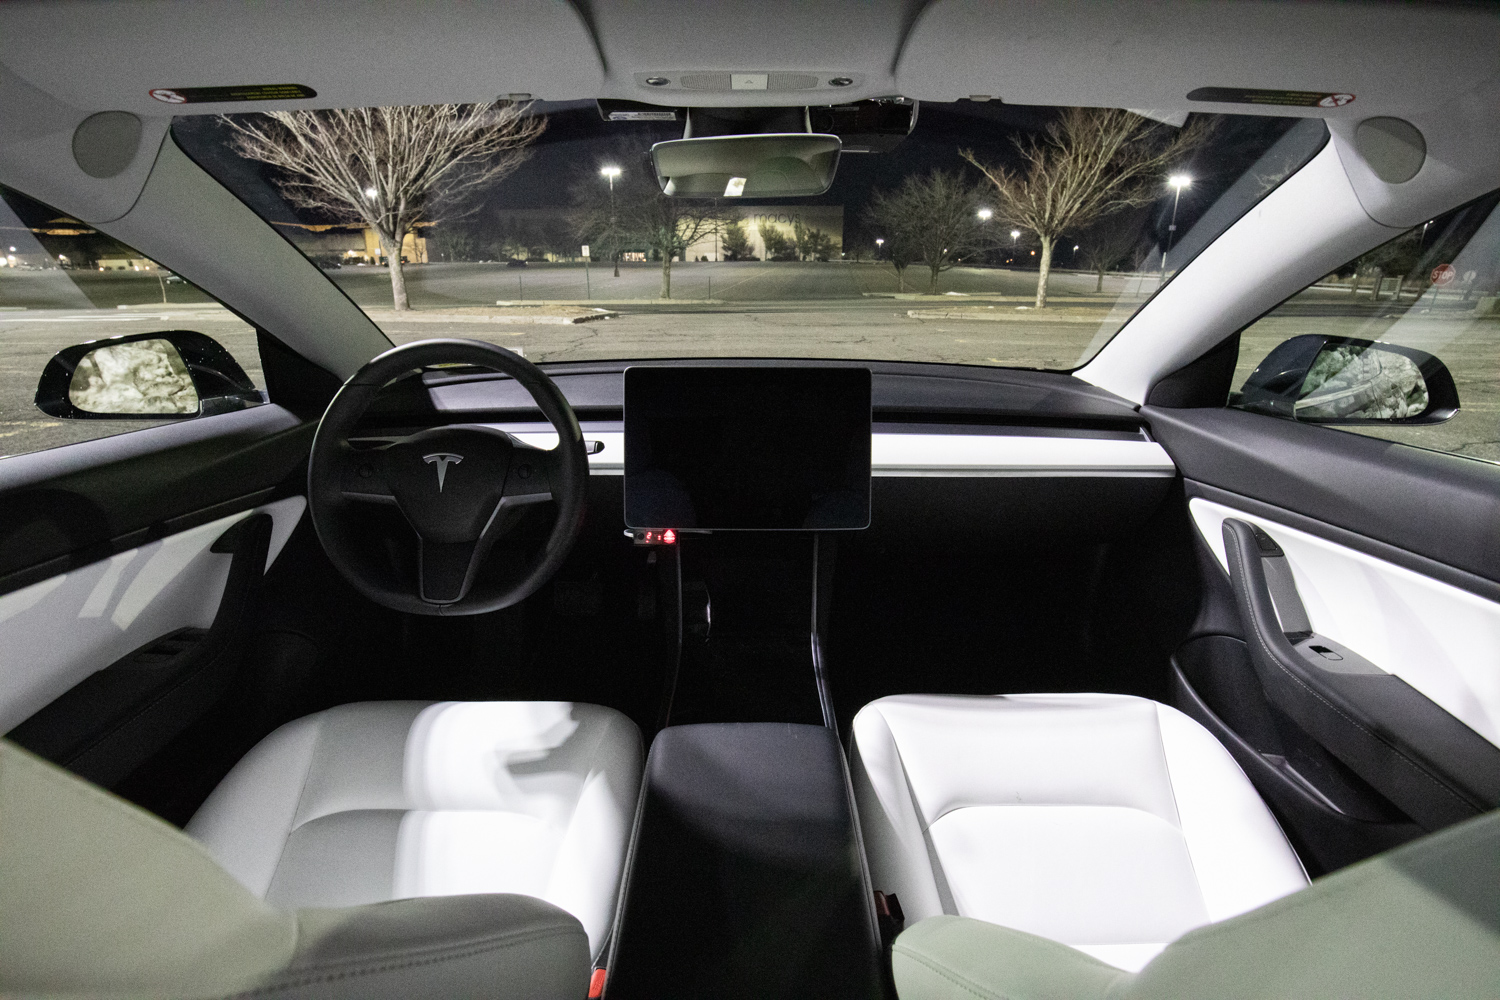 Tesla Model 3 AWD interior